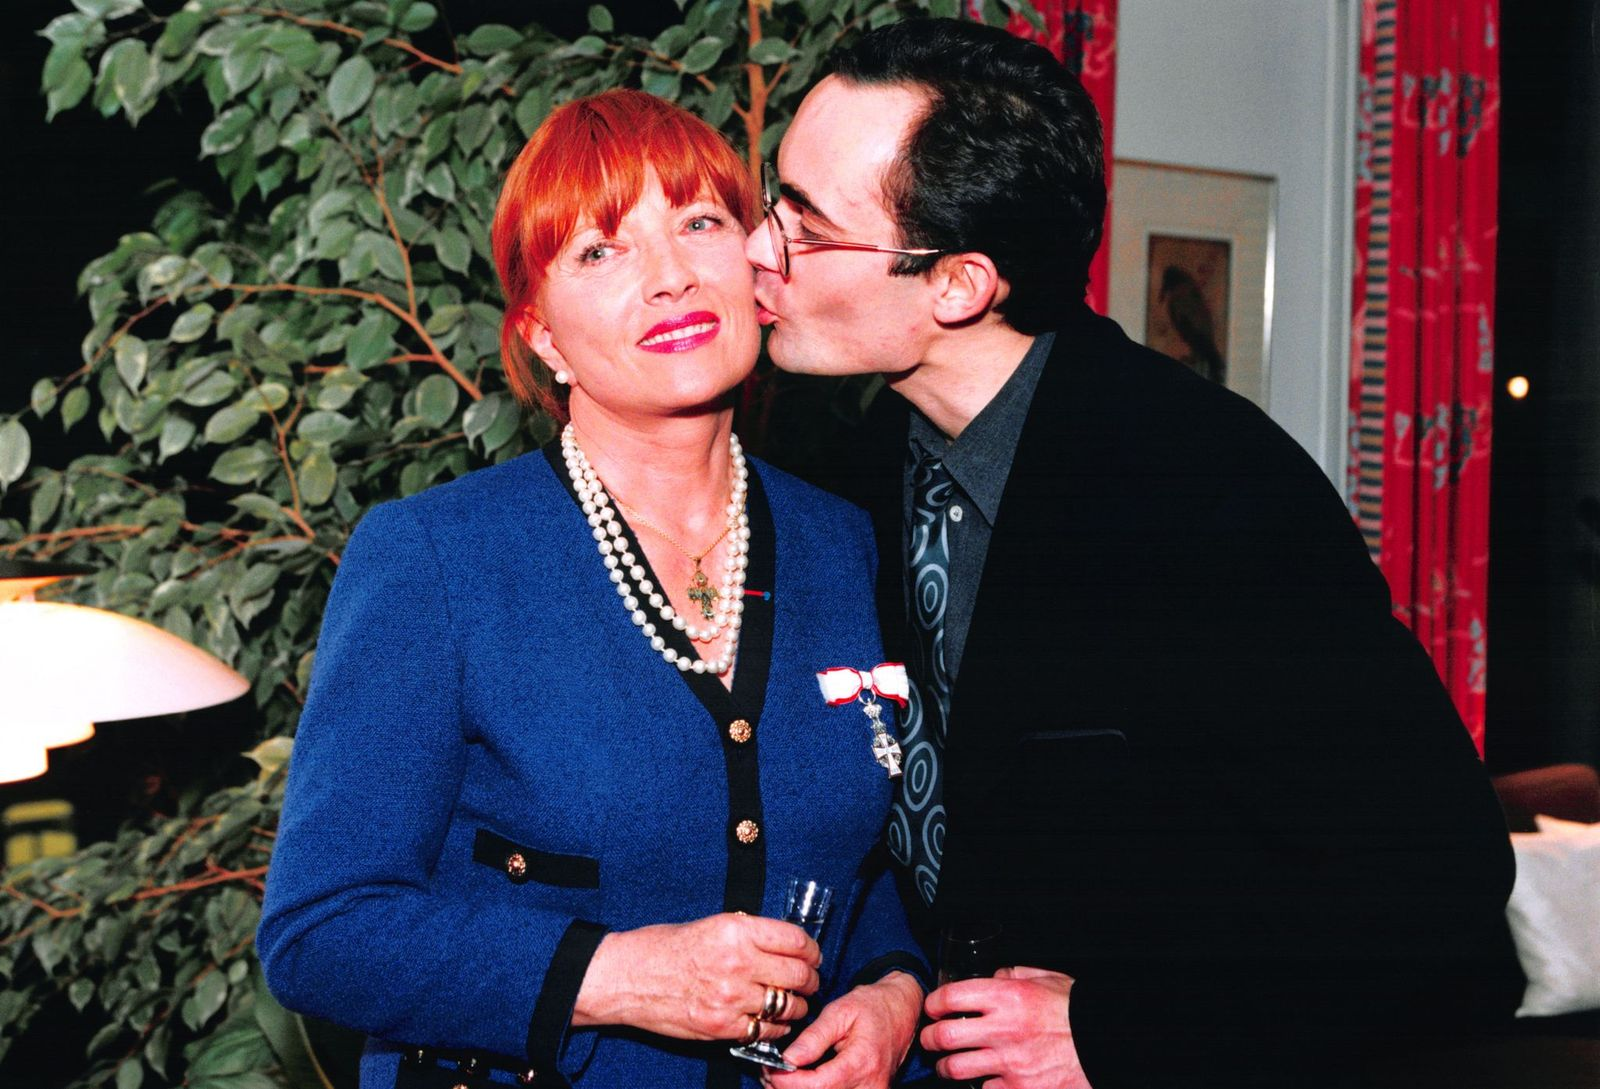 Stéphane Audran et son fils Thomas Chabrol | Photo : Getty Images